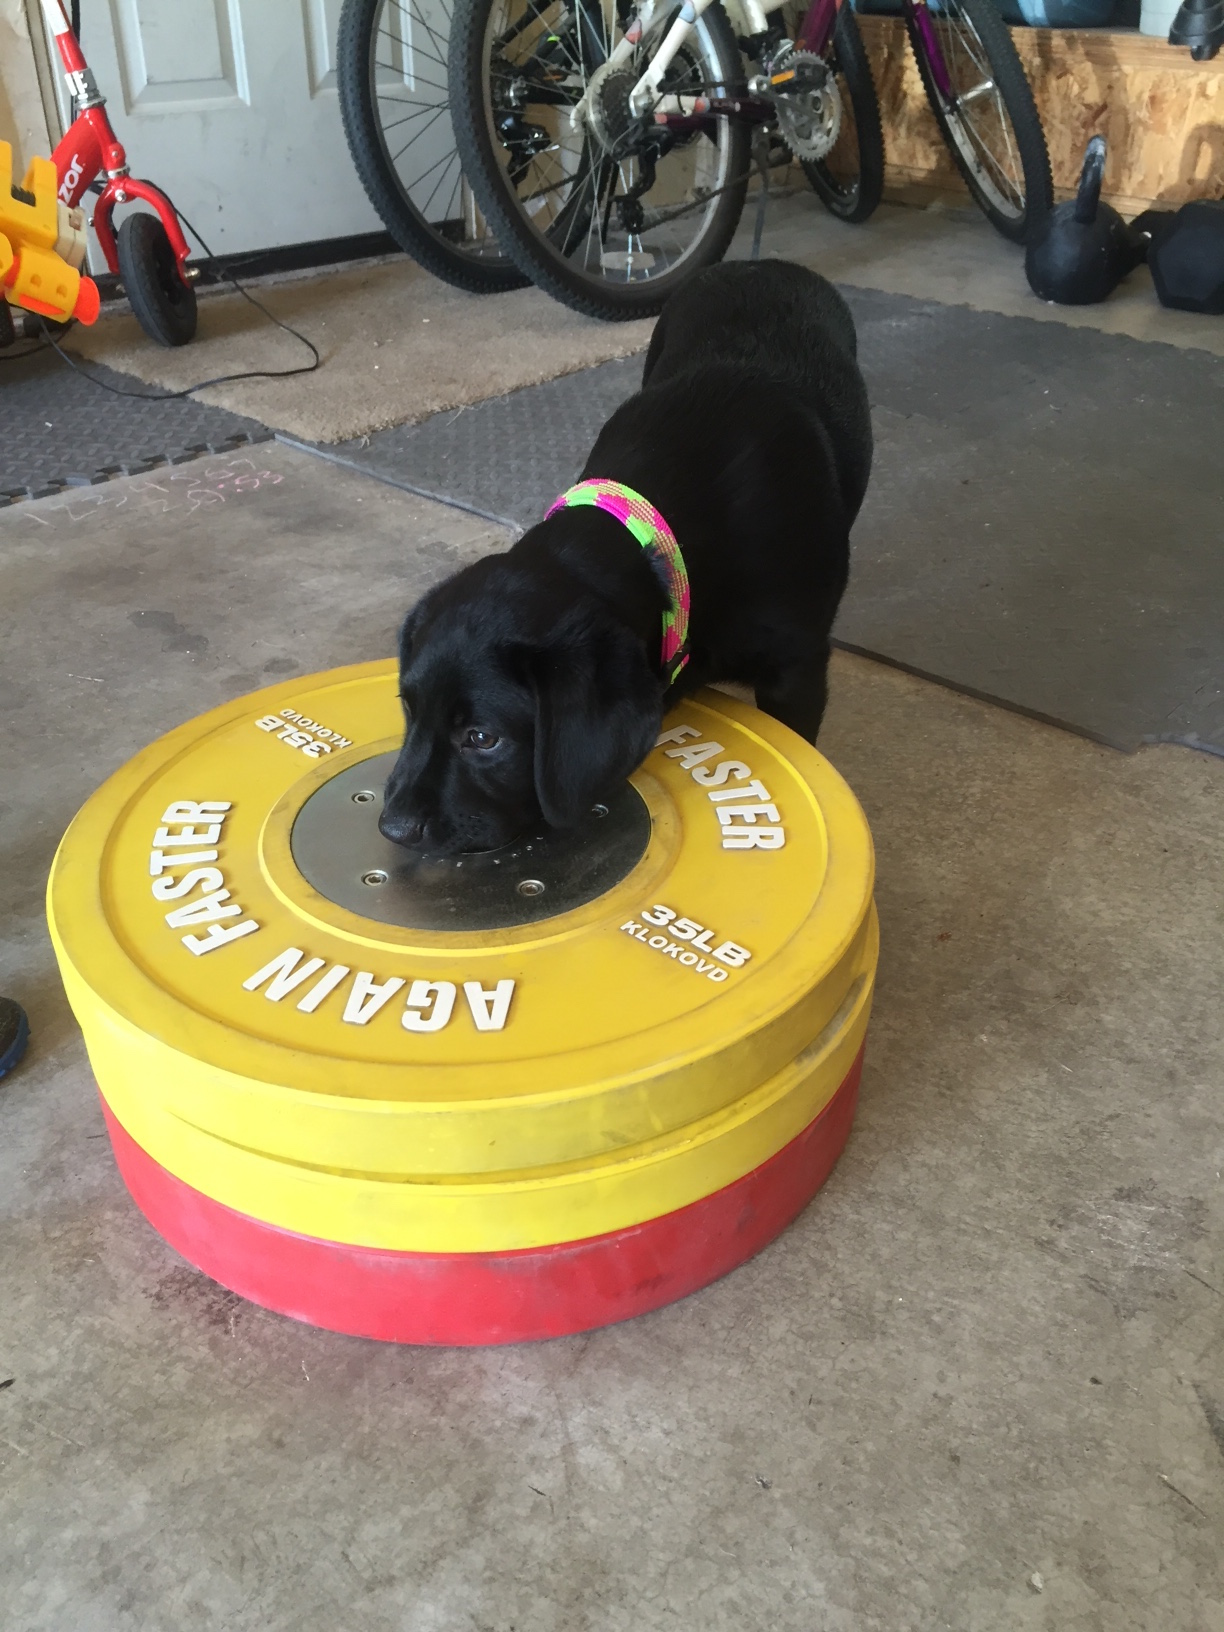 Lani loves bumper plates.  She says it's time to clang-n-bang!